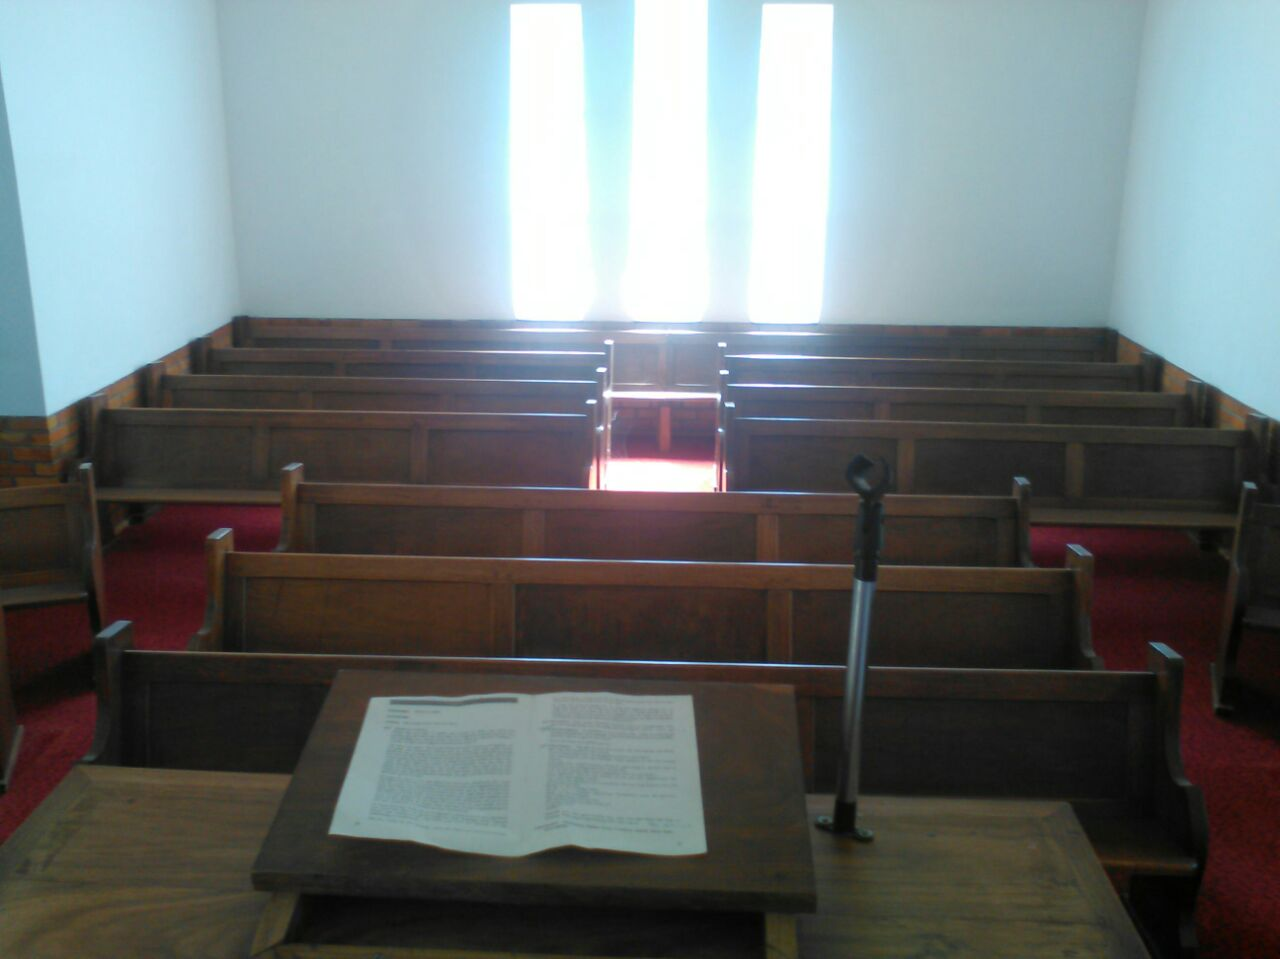 Church benches, pulpit and side panels